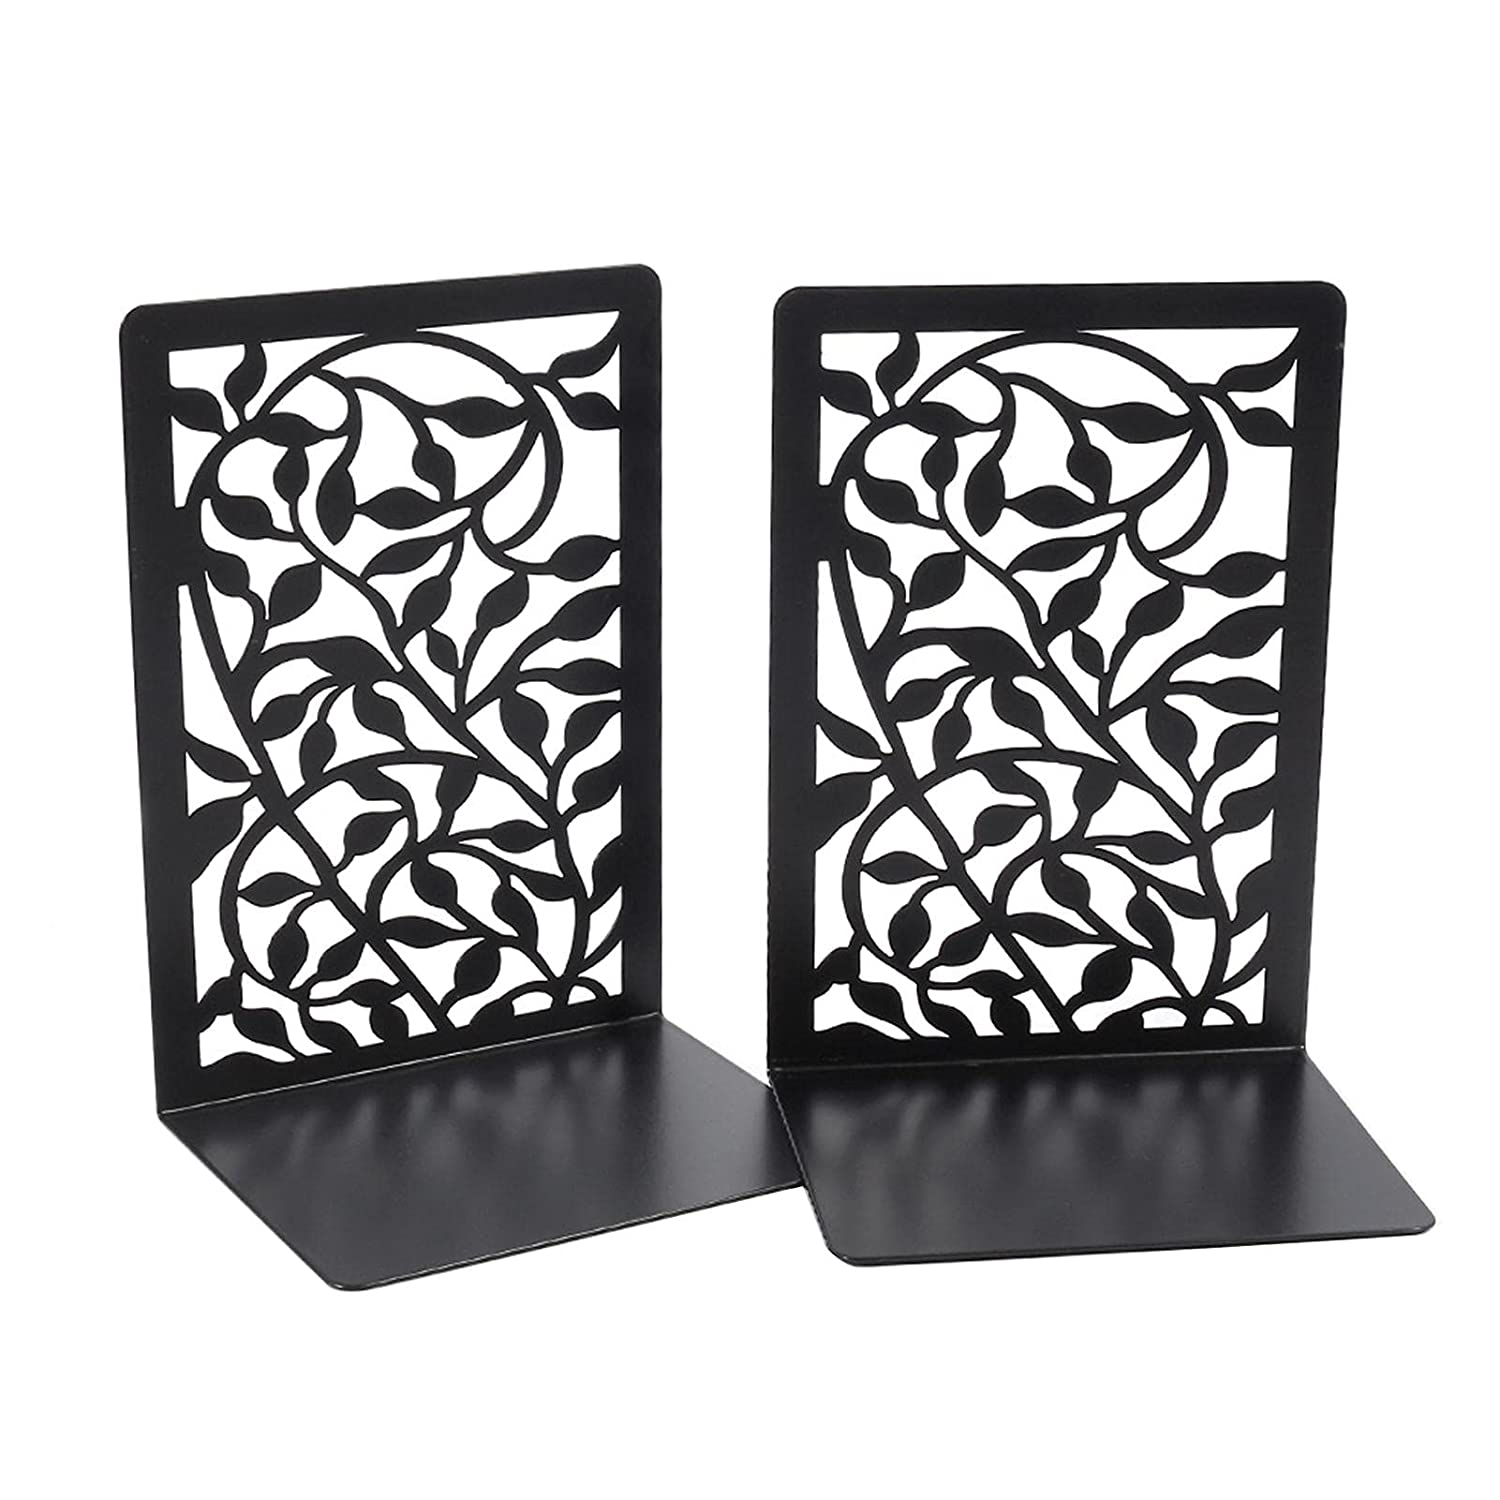 Max 70% OFF Metal Bookends Decorative Book Black Supports Sale SALE% OFF Ends No